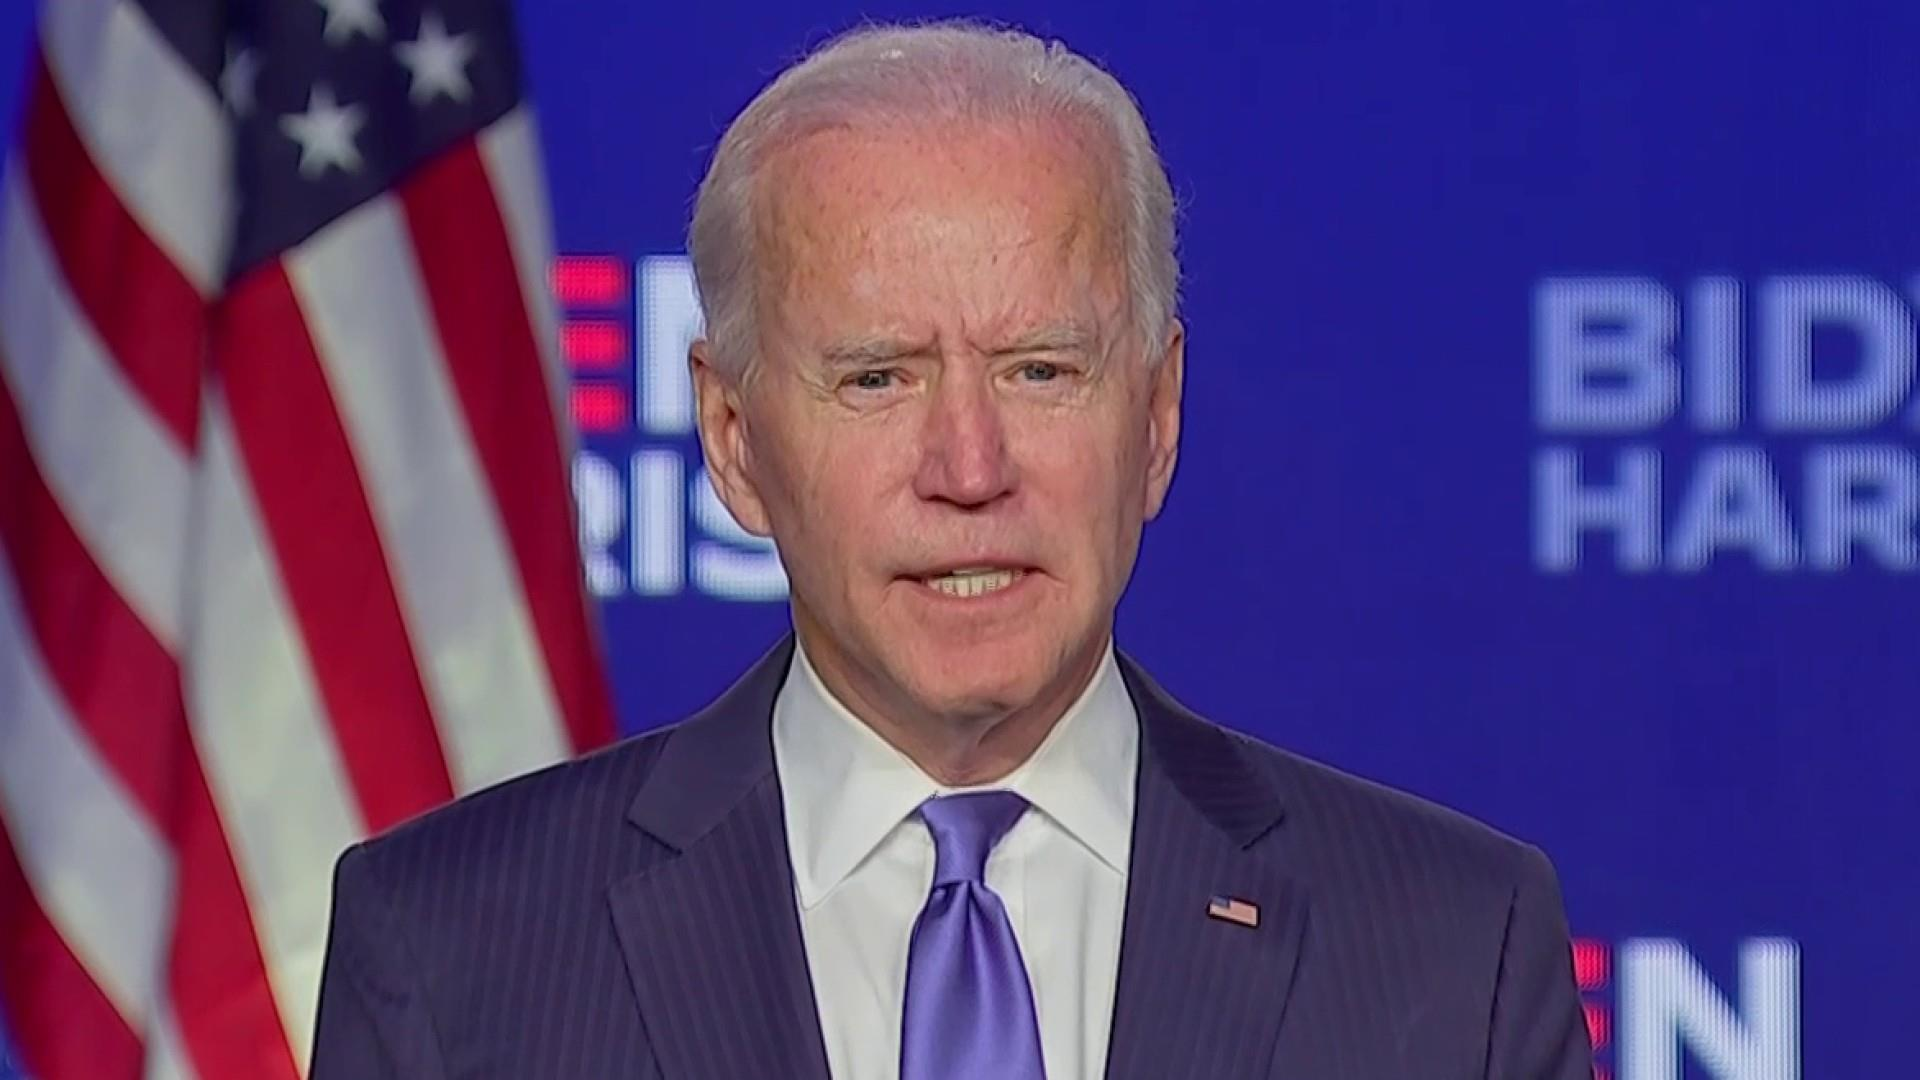 Confident in victory, Biden appeals for national unity